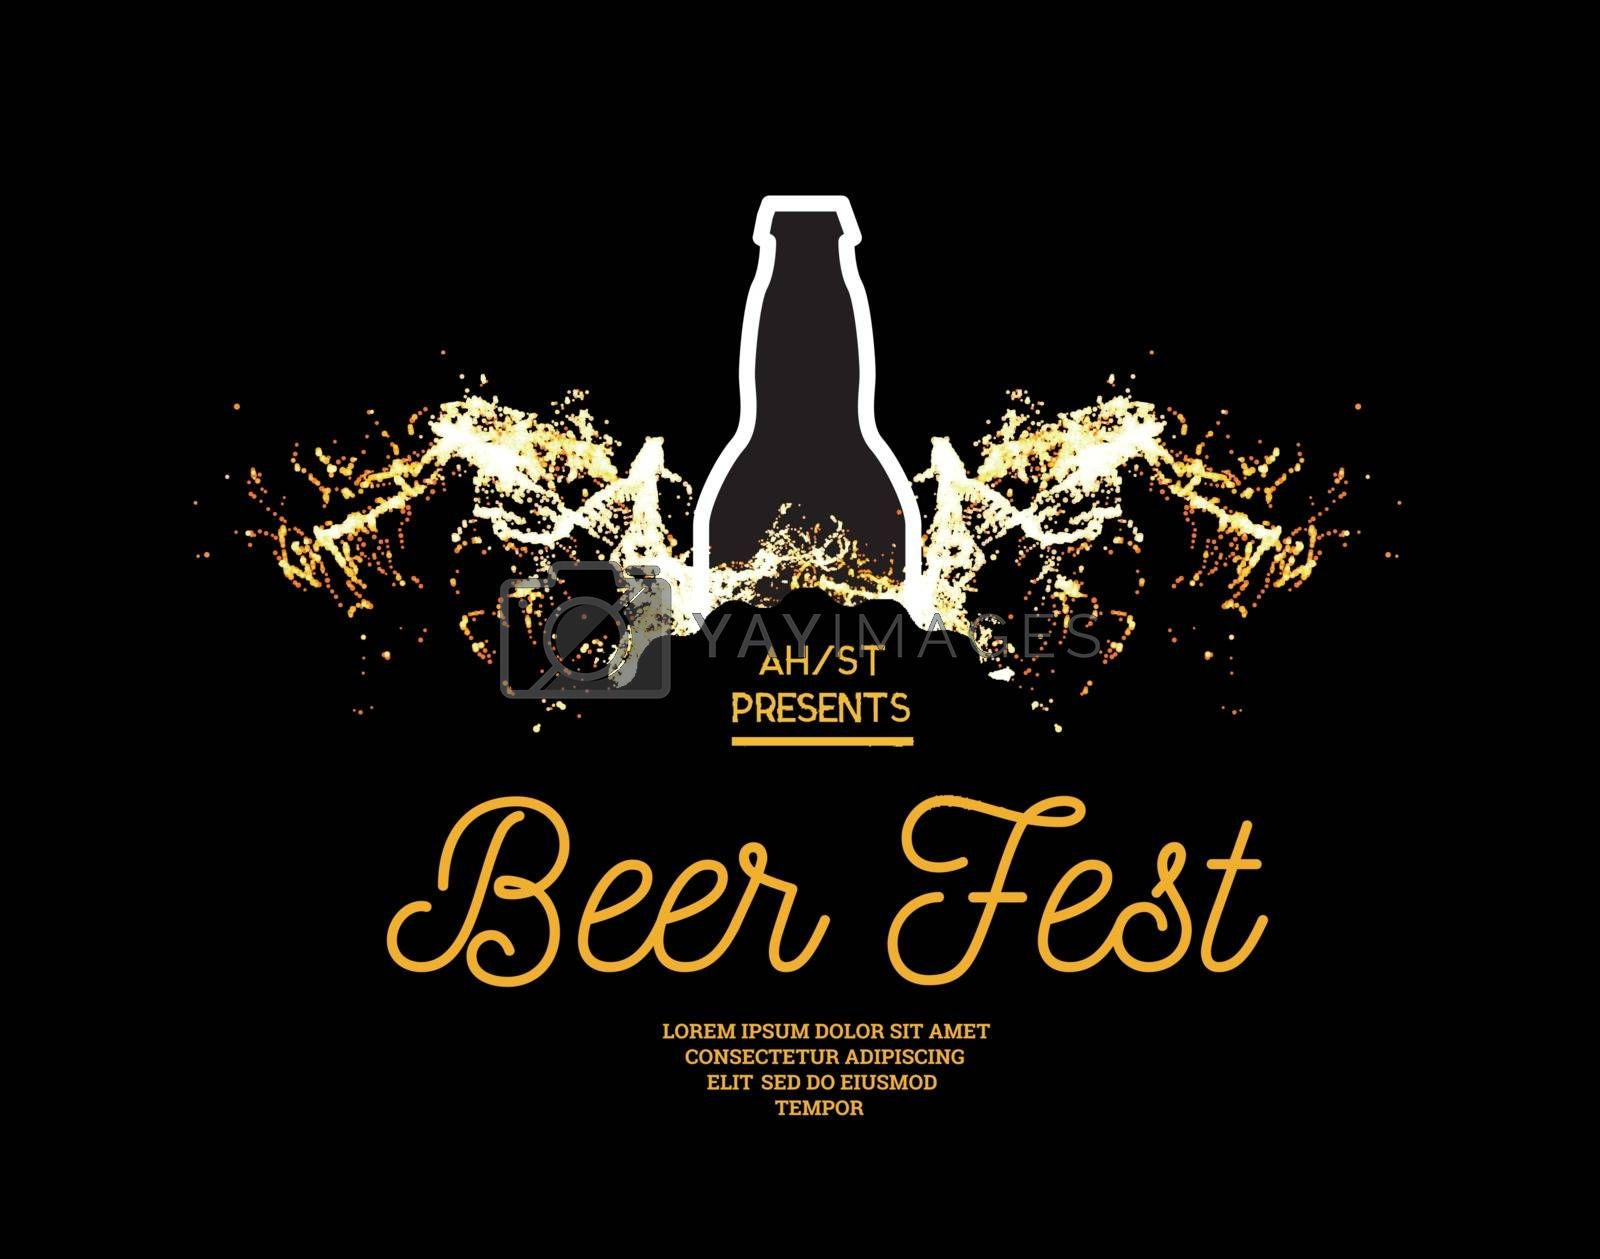 Royalty free image of Beer fest. Splash of beer with bubbles on a black background. Vector illustration with a silhouette of a bottle by sermax55